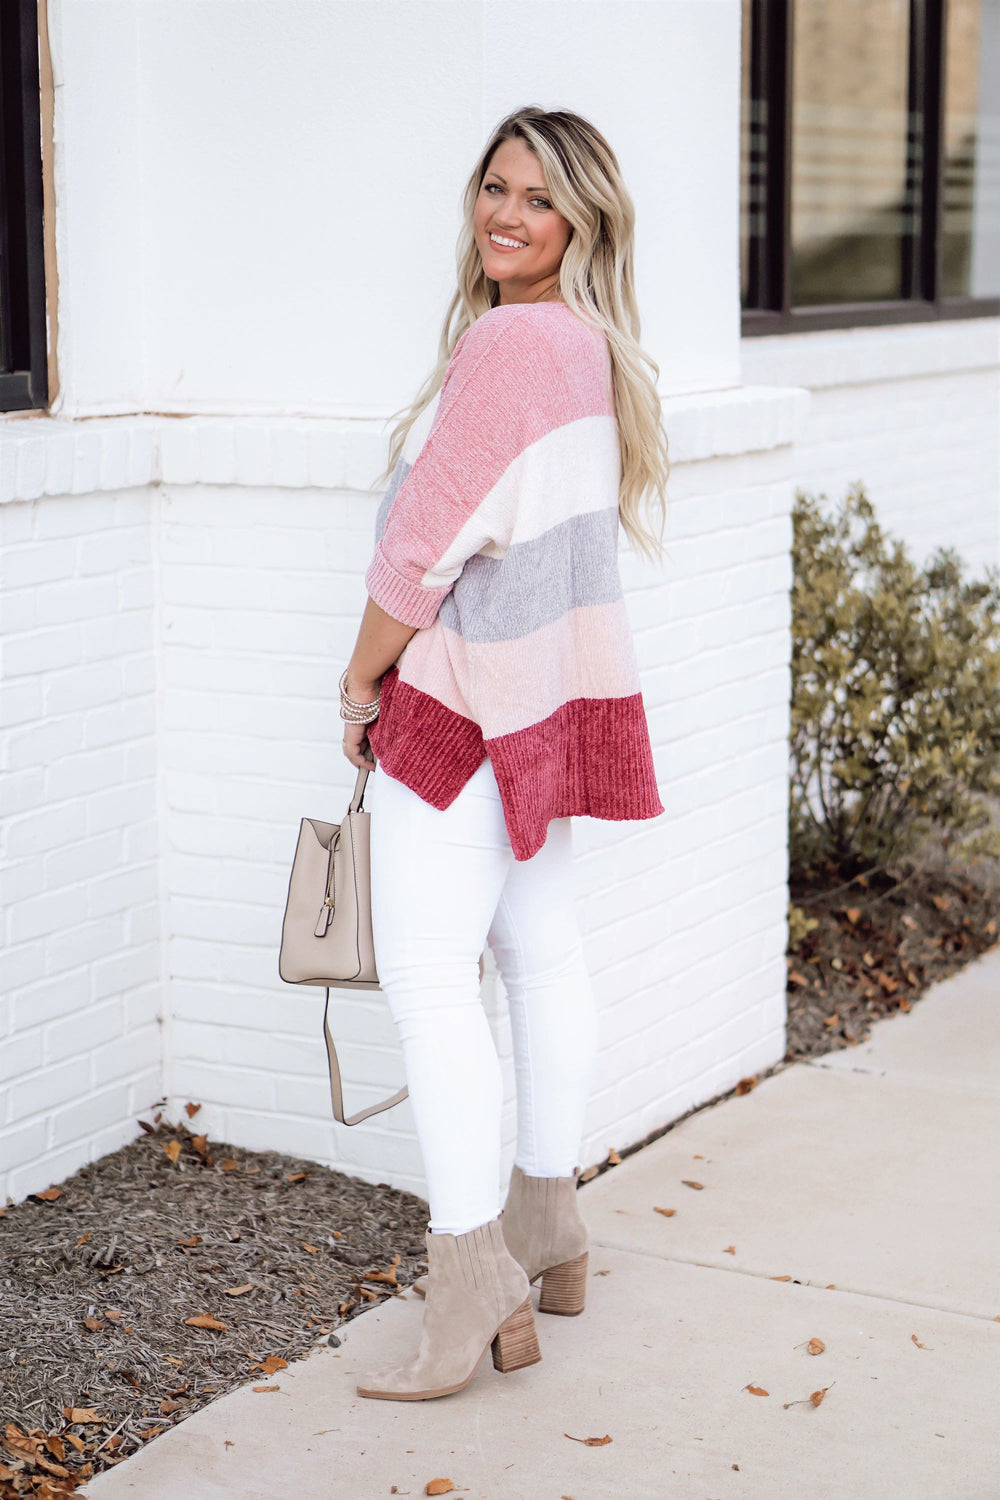 Berry Cozy Sweater Inspired by Liz from Lattes with Liz